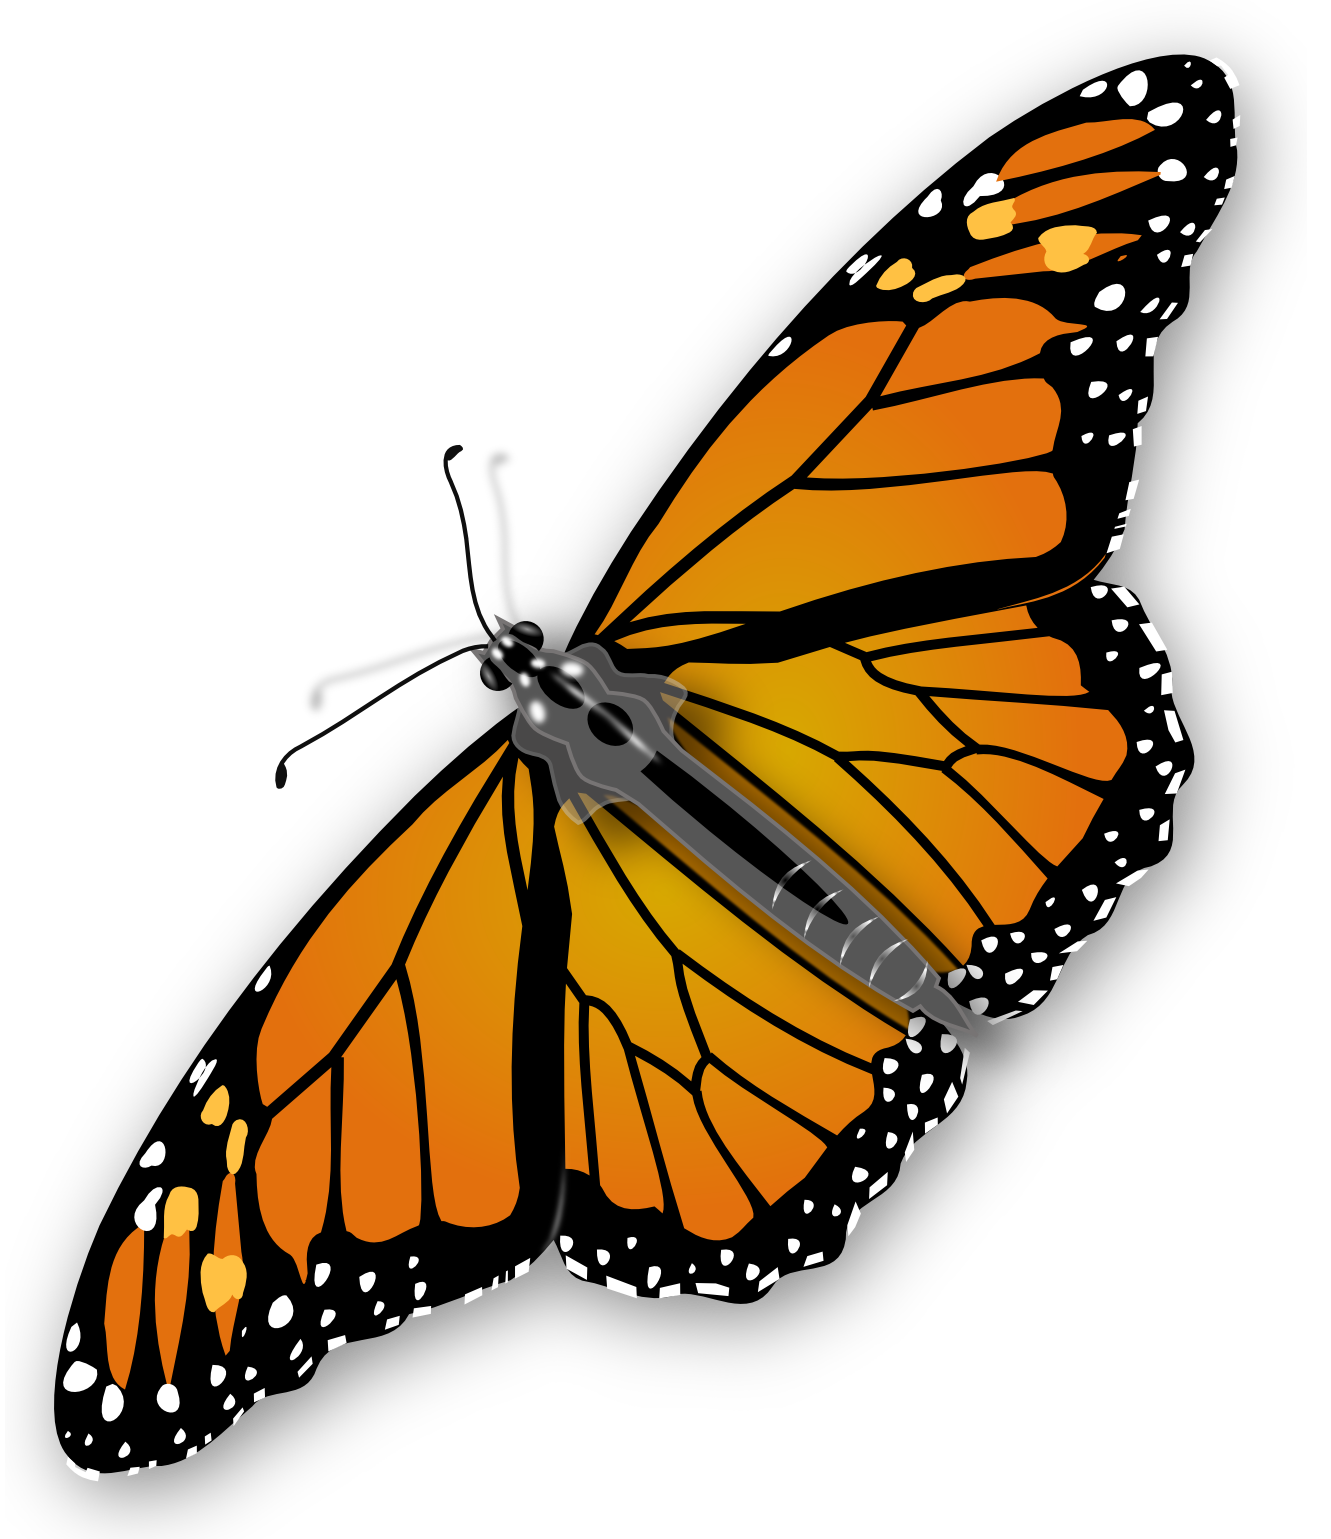 Butterfly png images. Image free picture download